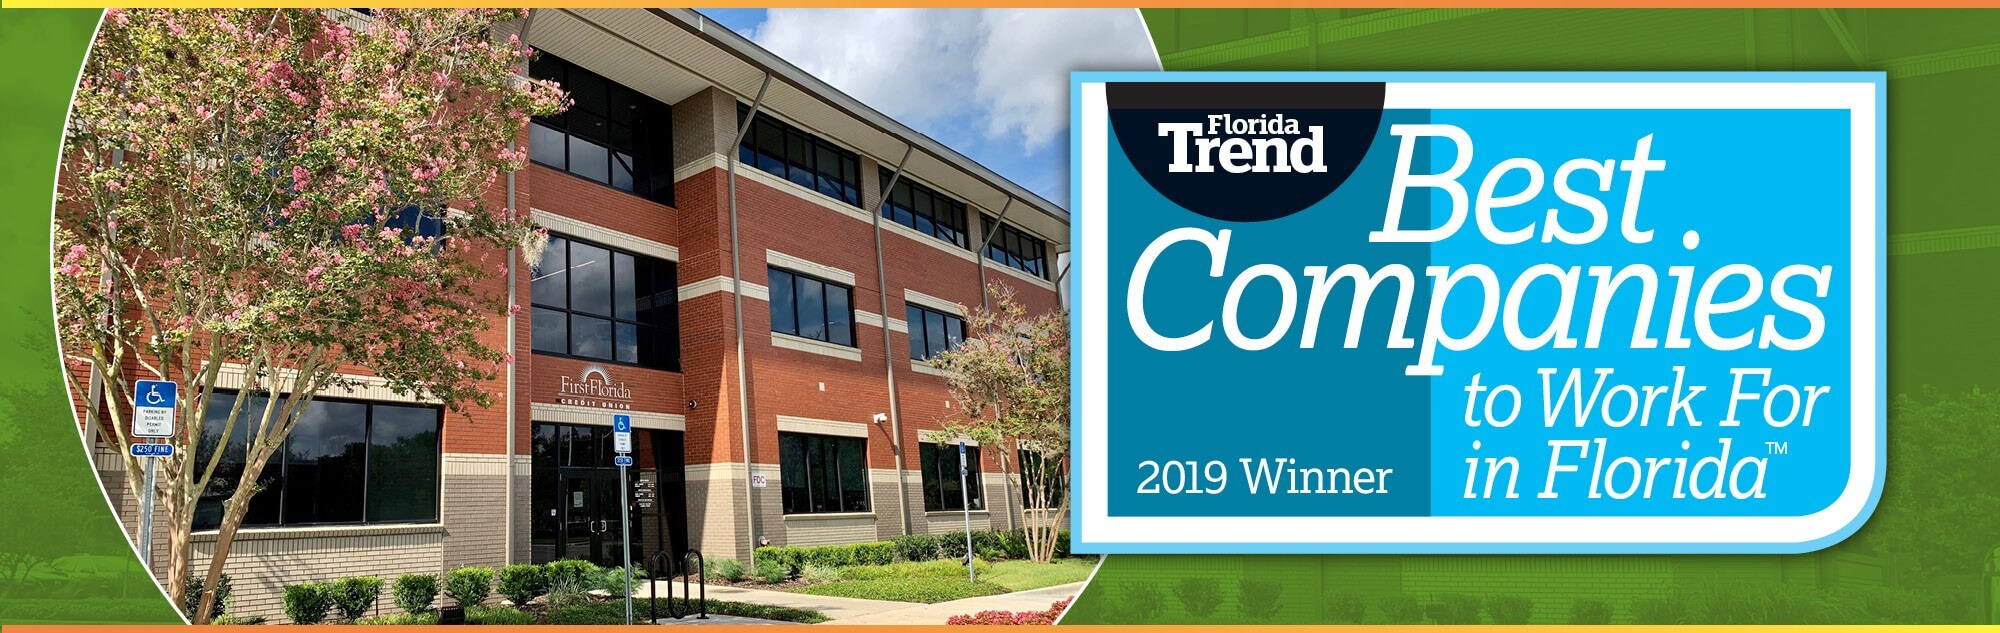 First Florida was awarded the title Best Companies to Work for in 2019